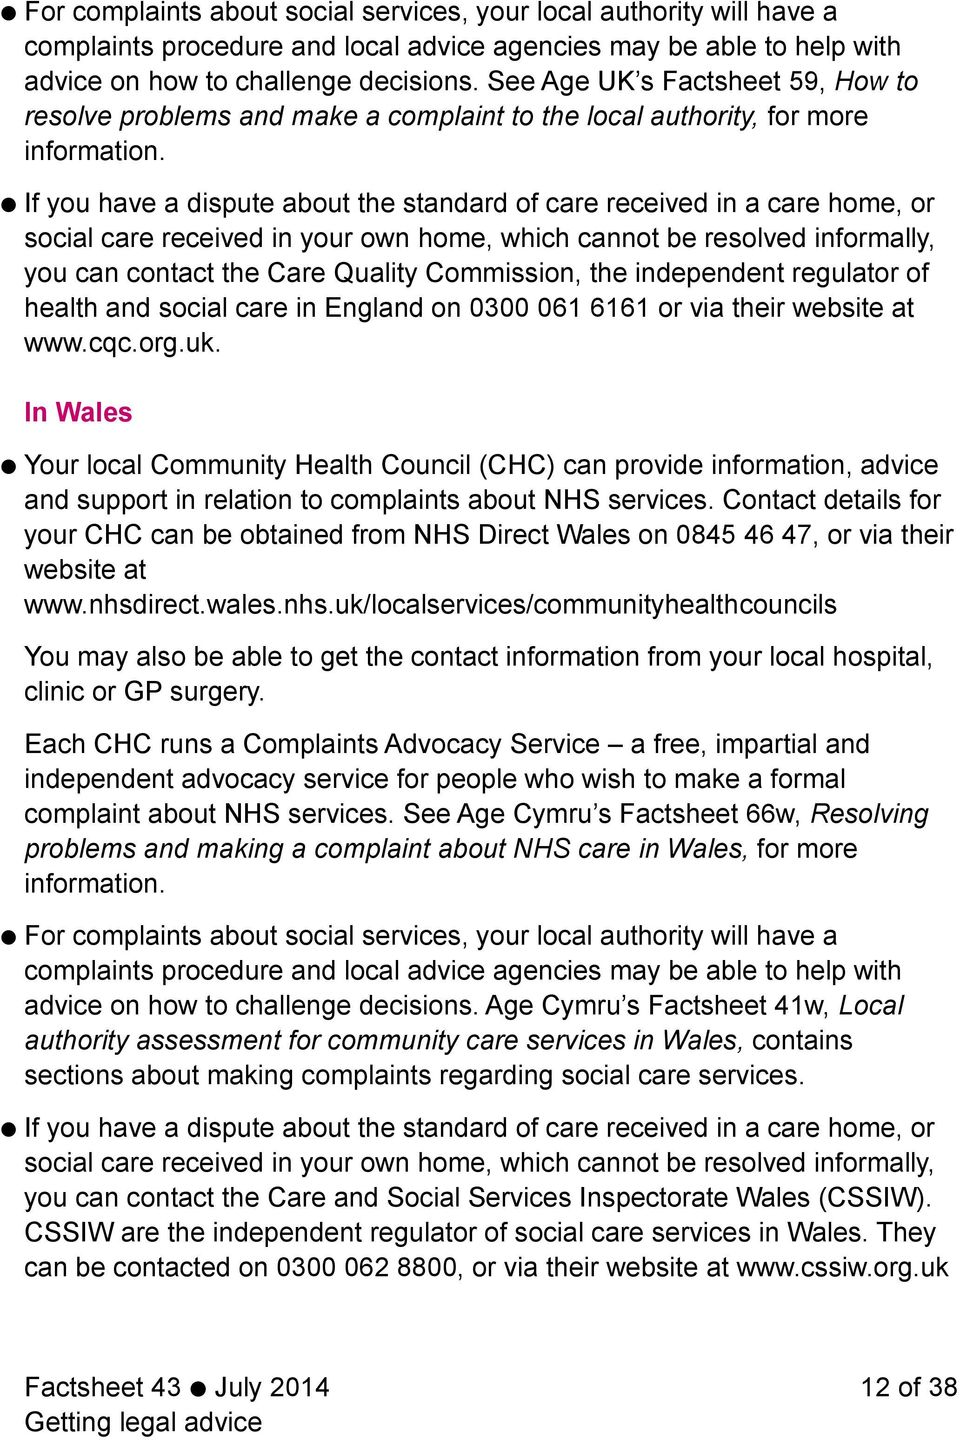 If you have a dispute about the standard of care received in a care home, or social care received in your own home, which cannot be resolved informally, you can contact the Care Quality Commission,